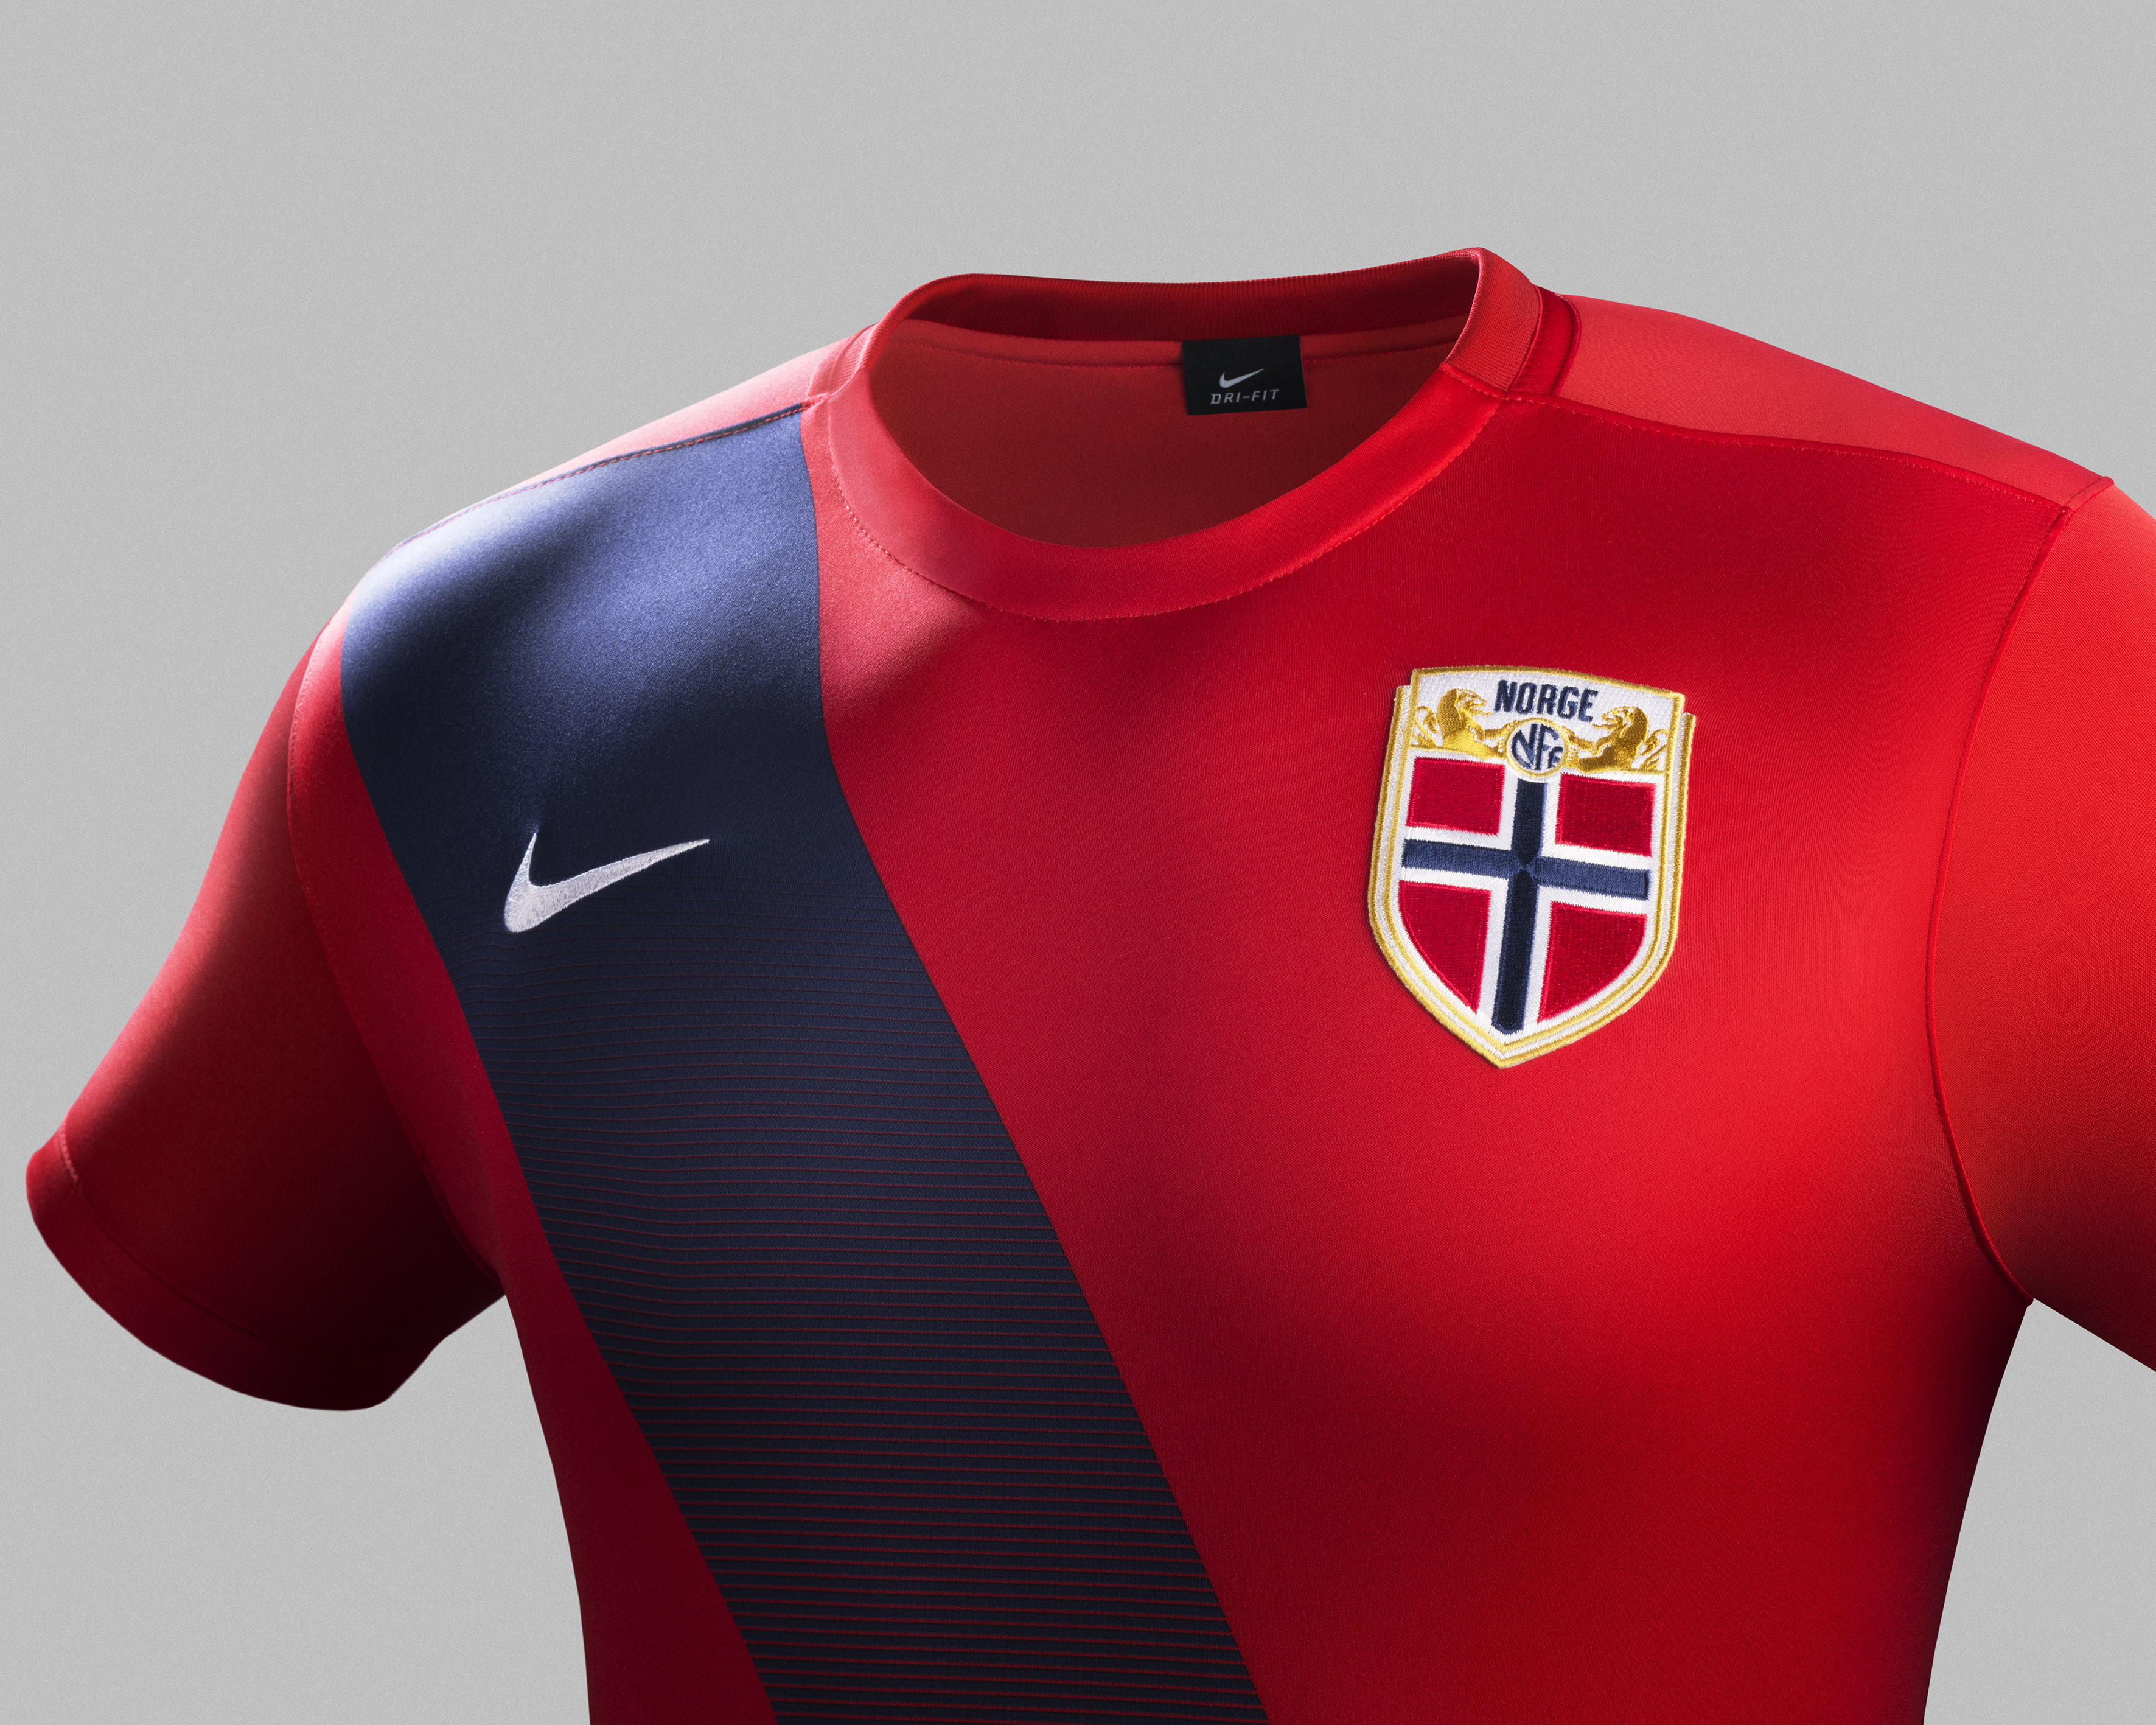 Sp15 NTK Norway PR H Crest R 39135. Sp15 NTK Norway PR H Front R 39134. The  home shirt is in Norway s ... 766a2420f